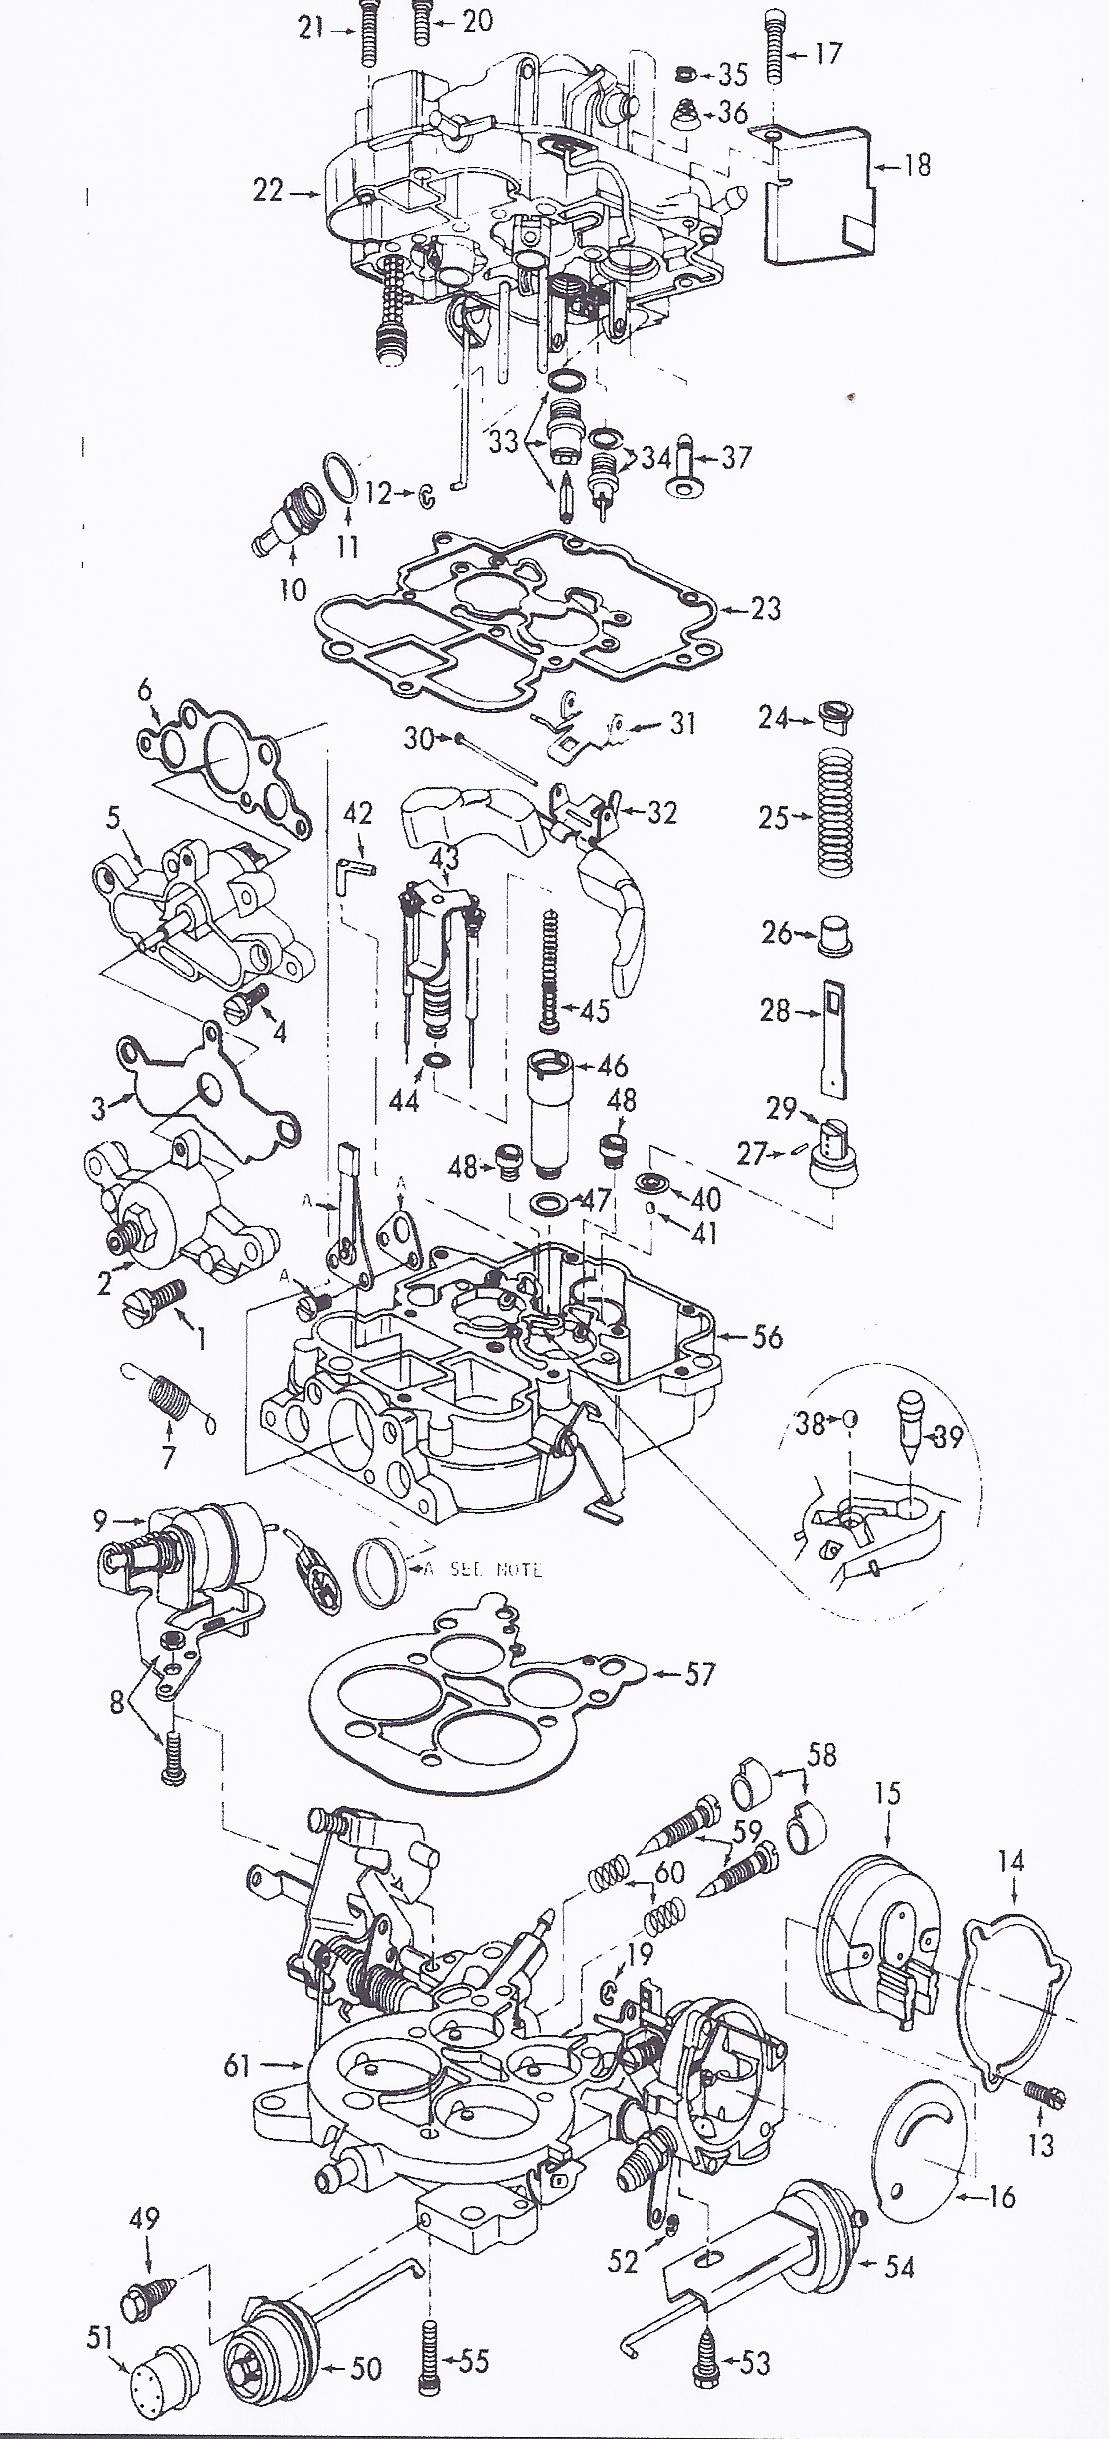 Ford Holley Carburetor Identification | Wiring Diagram Database